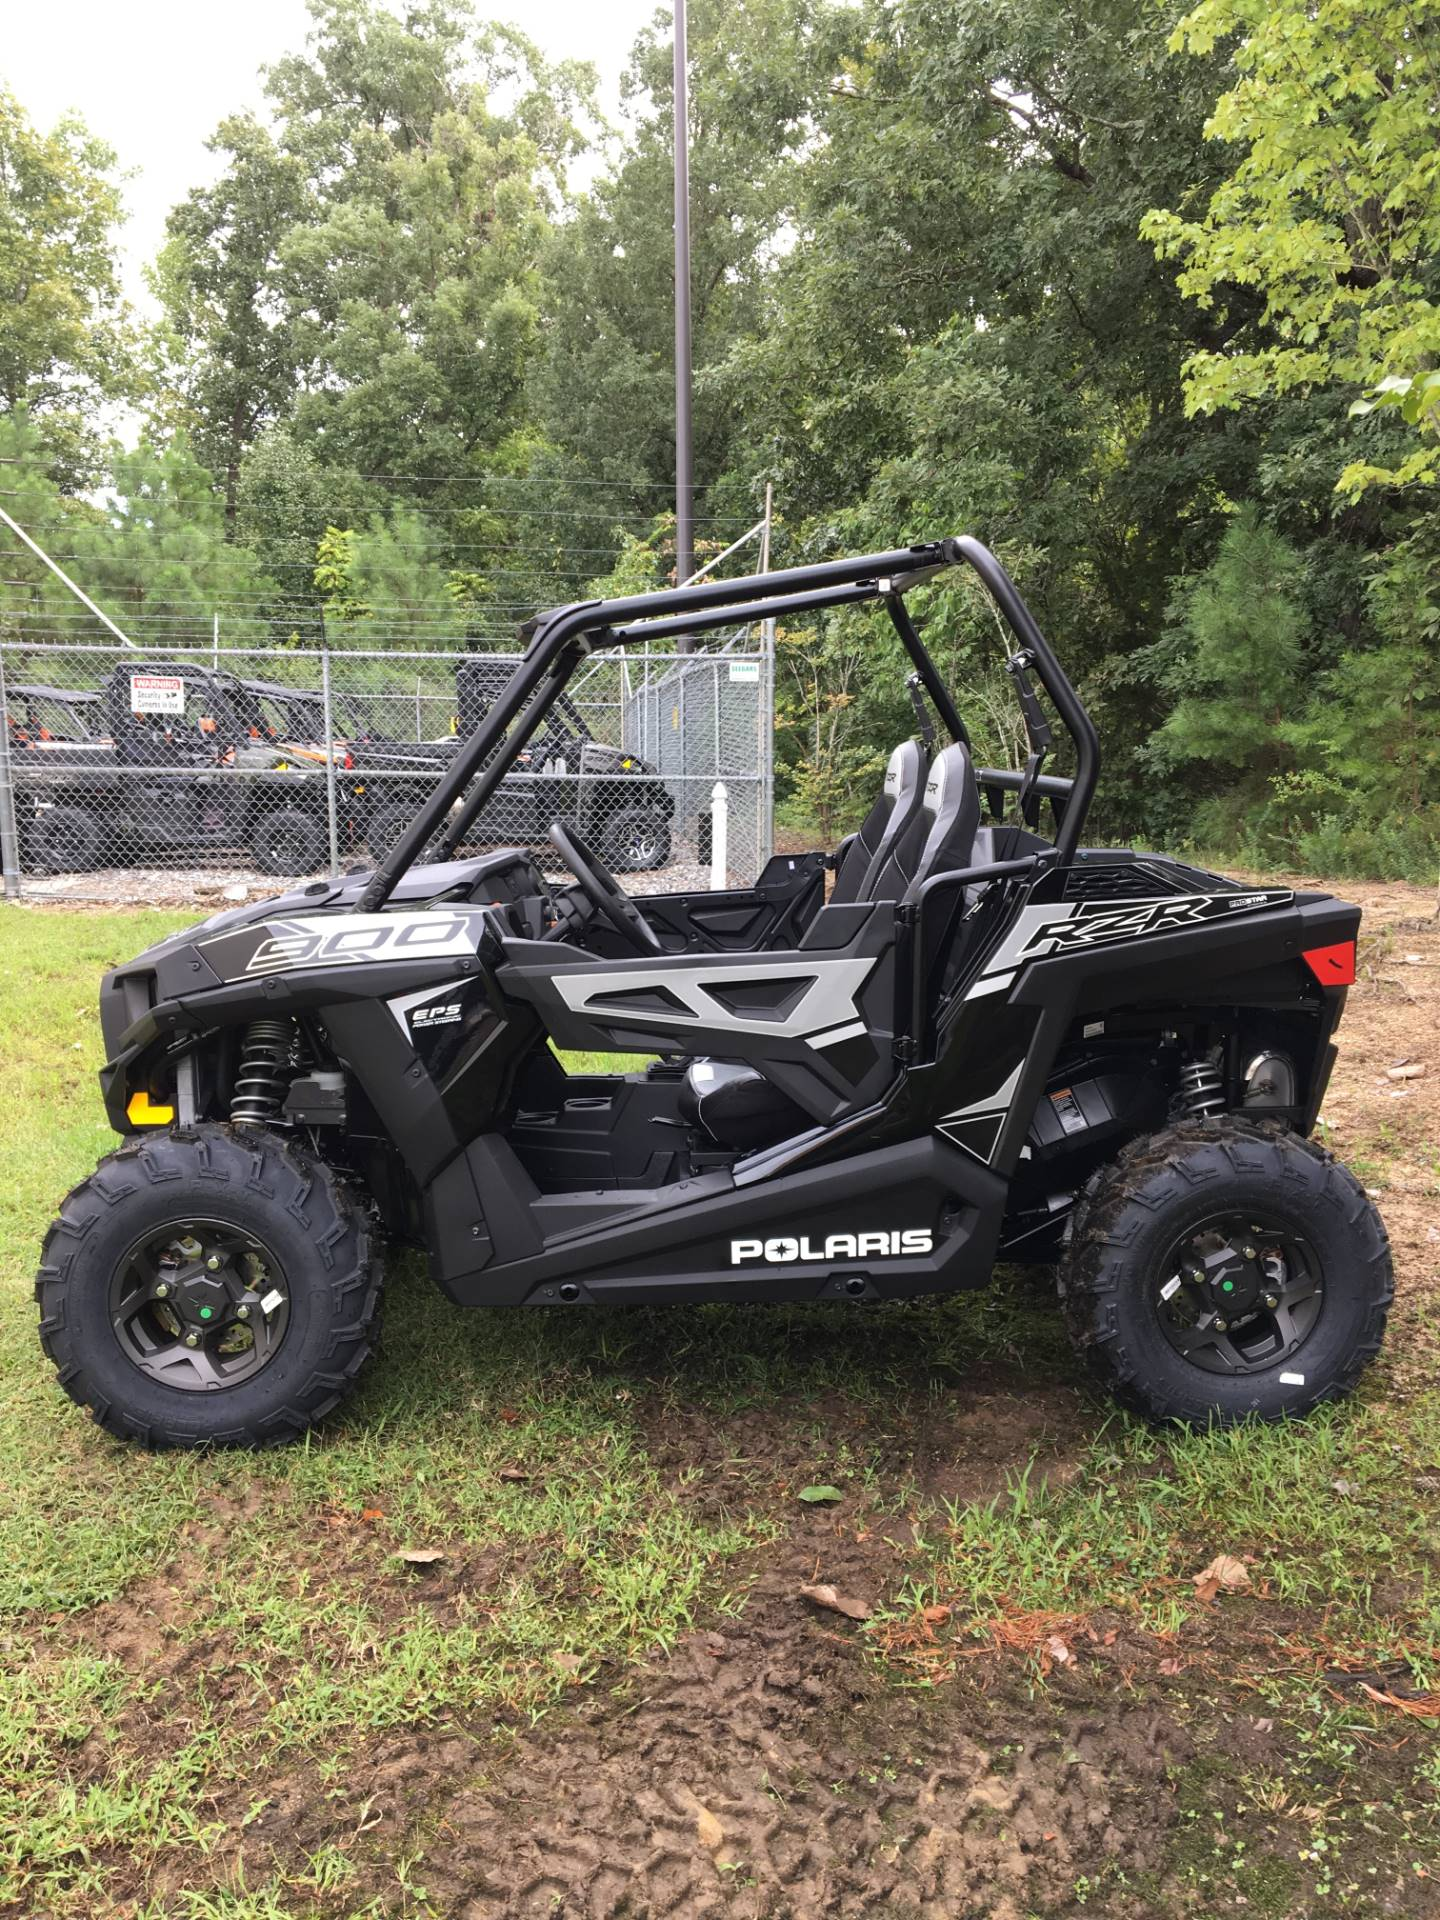 2019 Polaris RZR 900 EPS in High Point, North Carolina - Photo 3